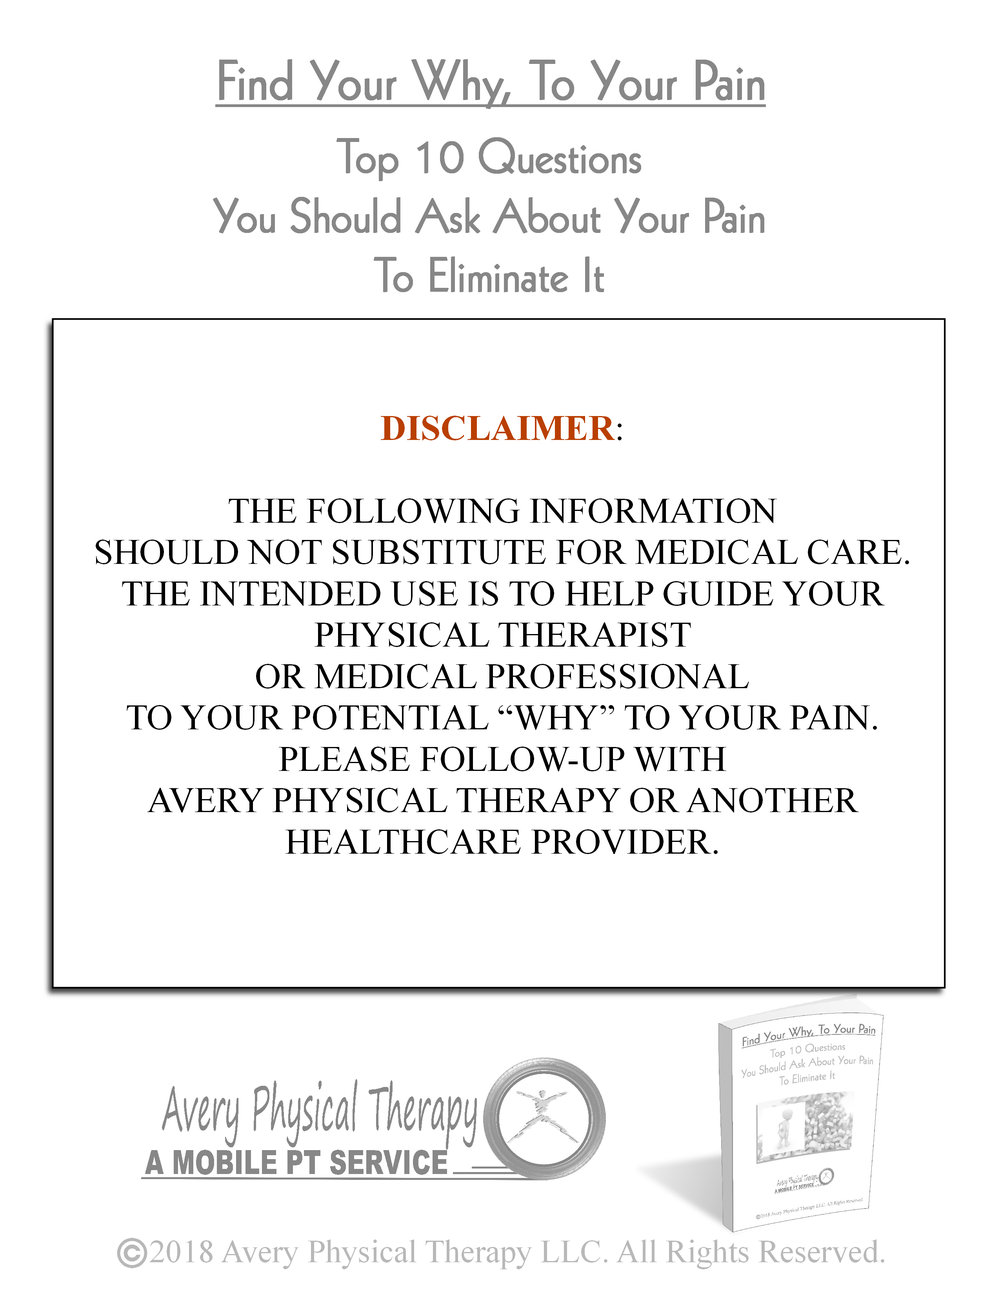 Top 10 Pain Questions 1-3G.JPG